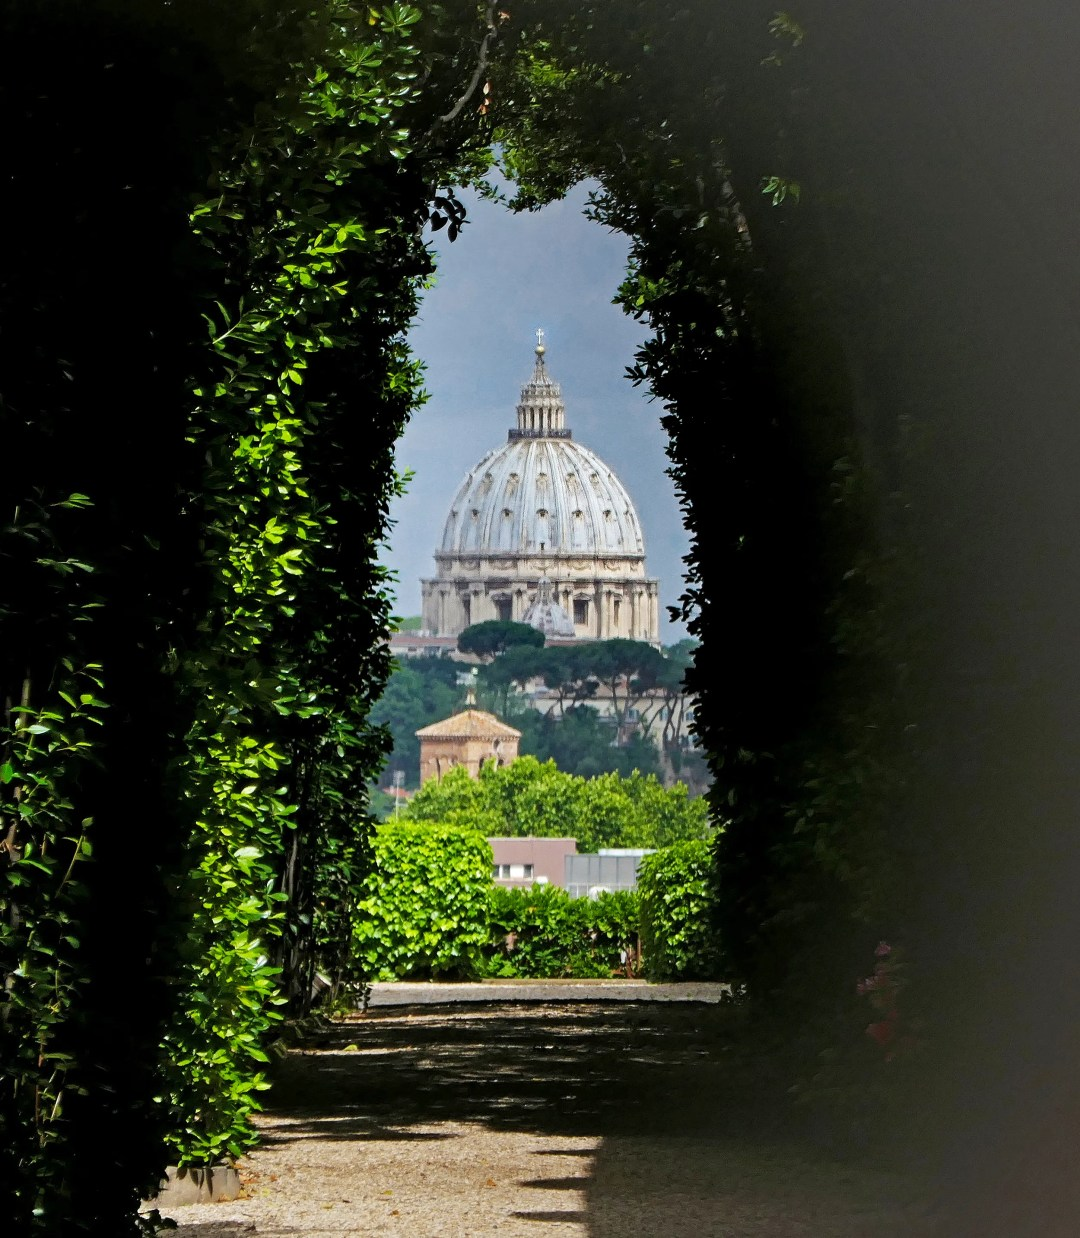 Keyhole view of St Peter's from the Order of Malta in Rome